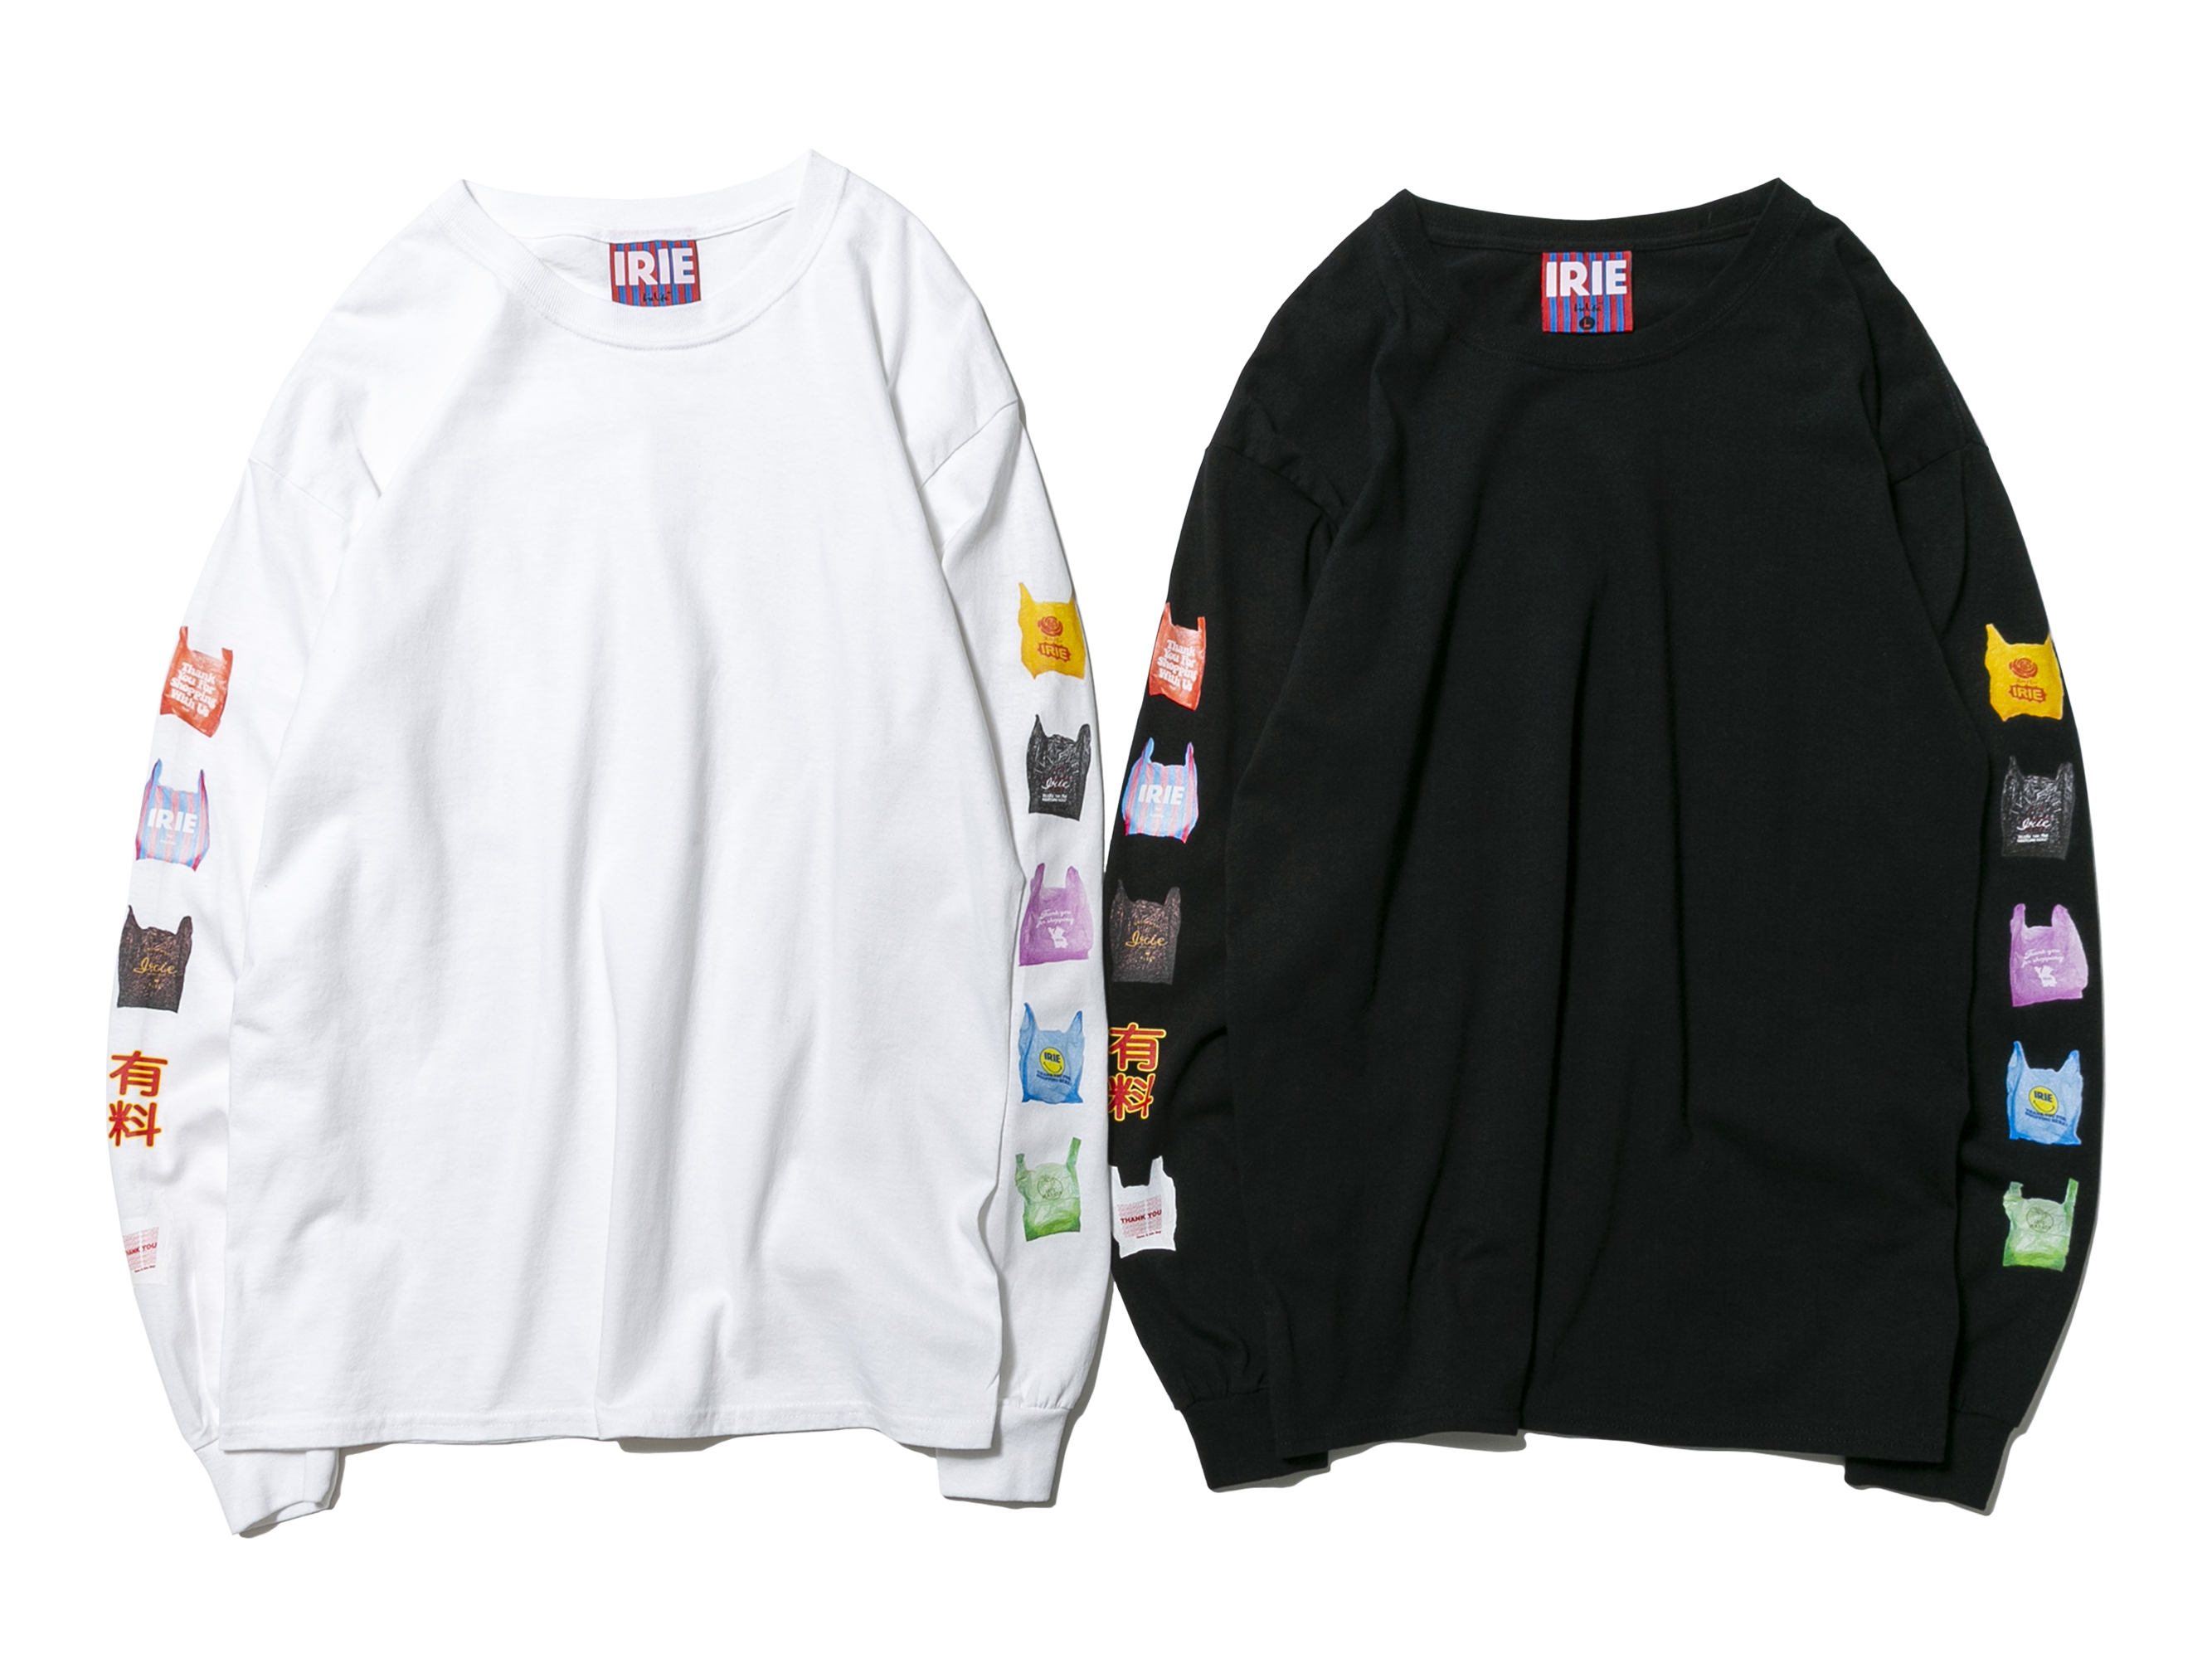 PLASTIC BAG L/S TEE - IRIE by irielife